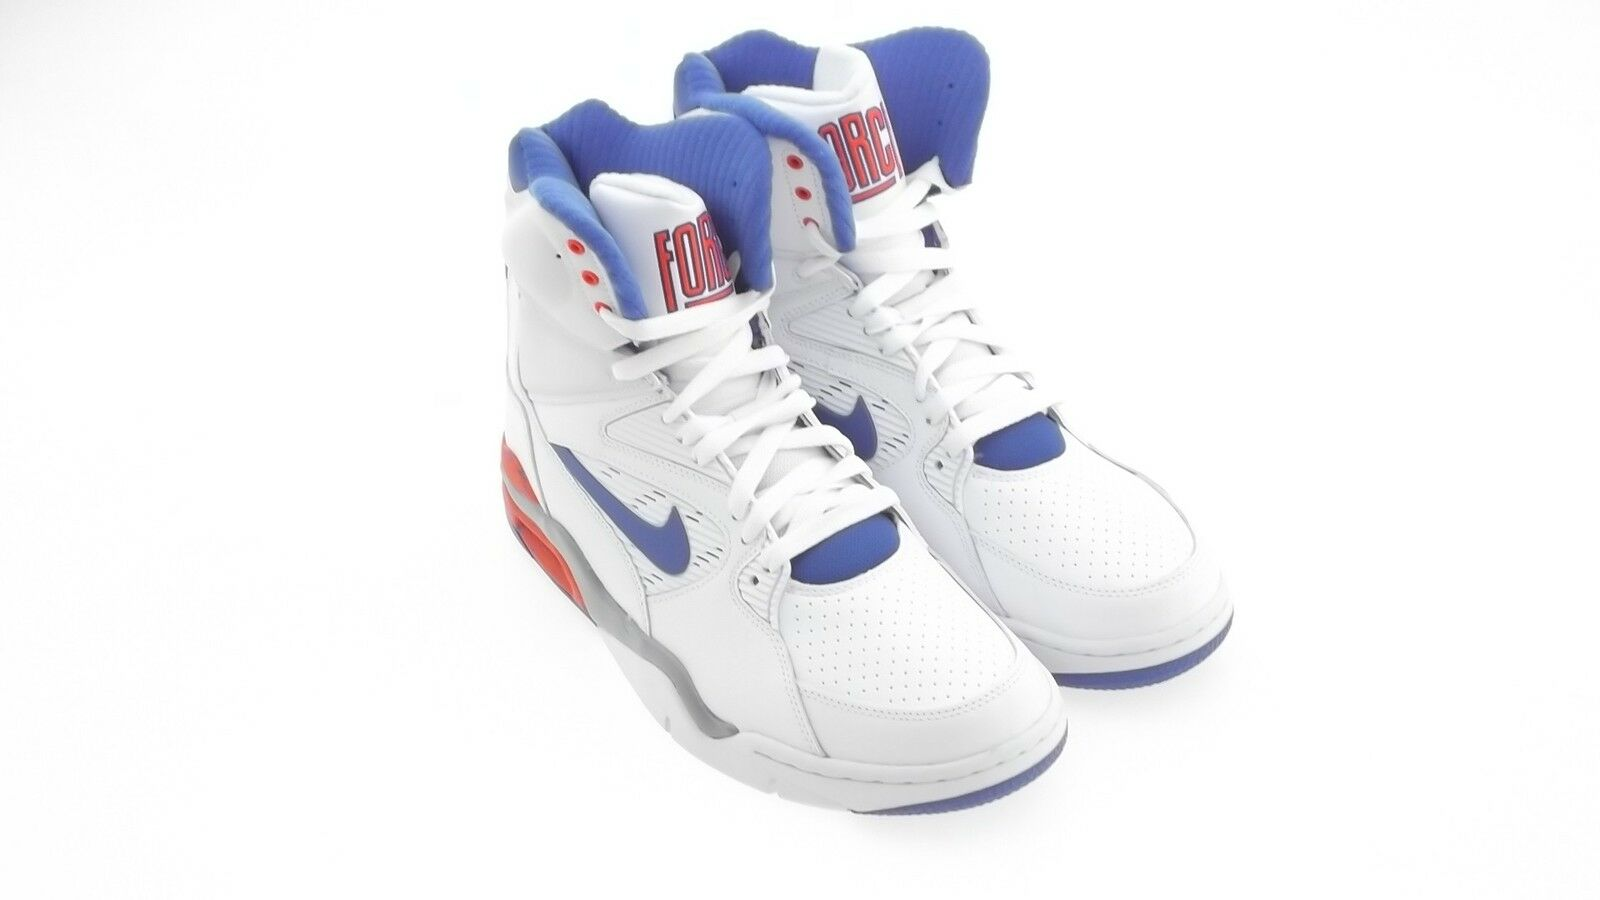 684715-101 Nike Men Air Command Force white bluee red